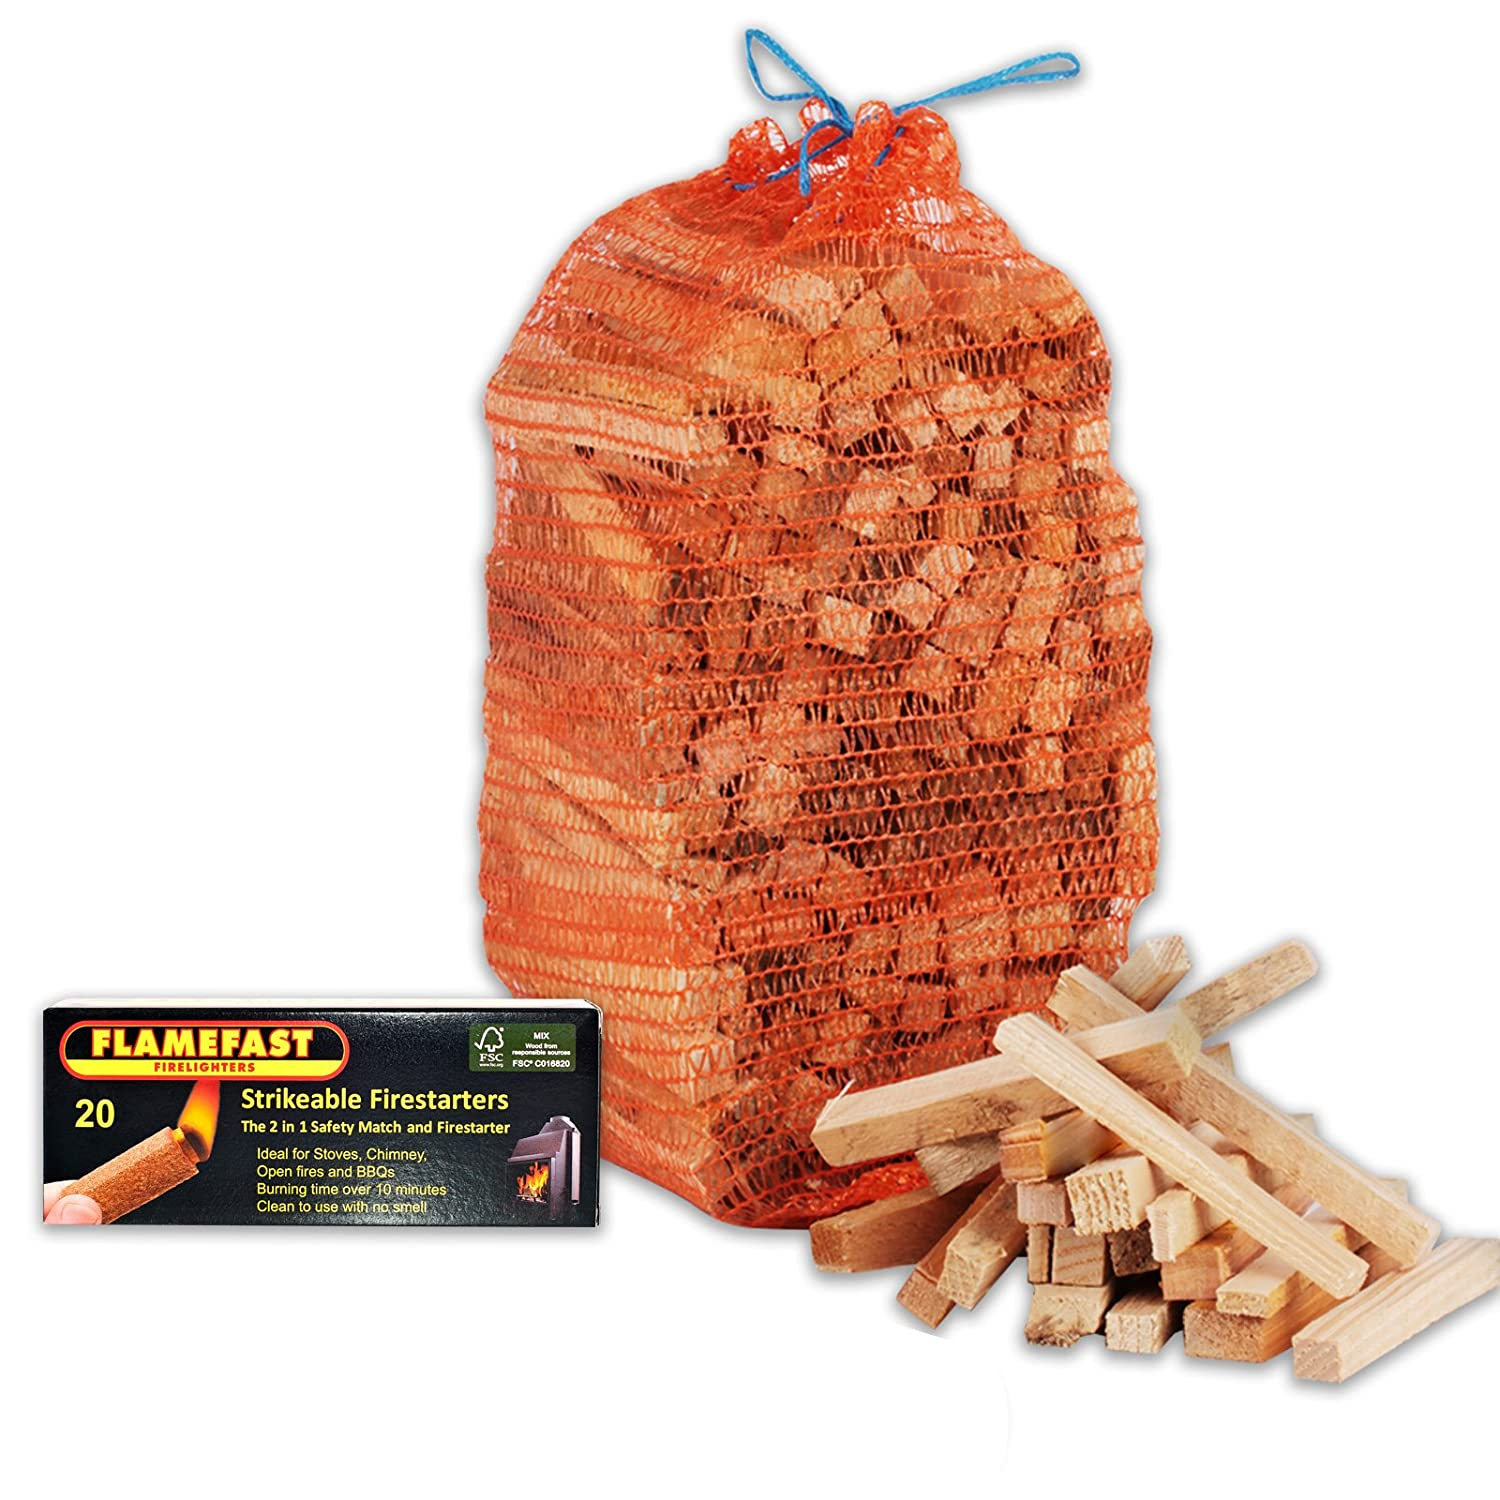 1 X Pack of 20 Flamefast Strikeable Firelighters Easy to Use 2in1 Safety Match and Firestarter + 3kg Kindling + Tigerbox Safety Matches